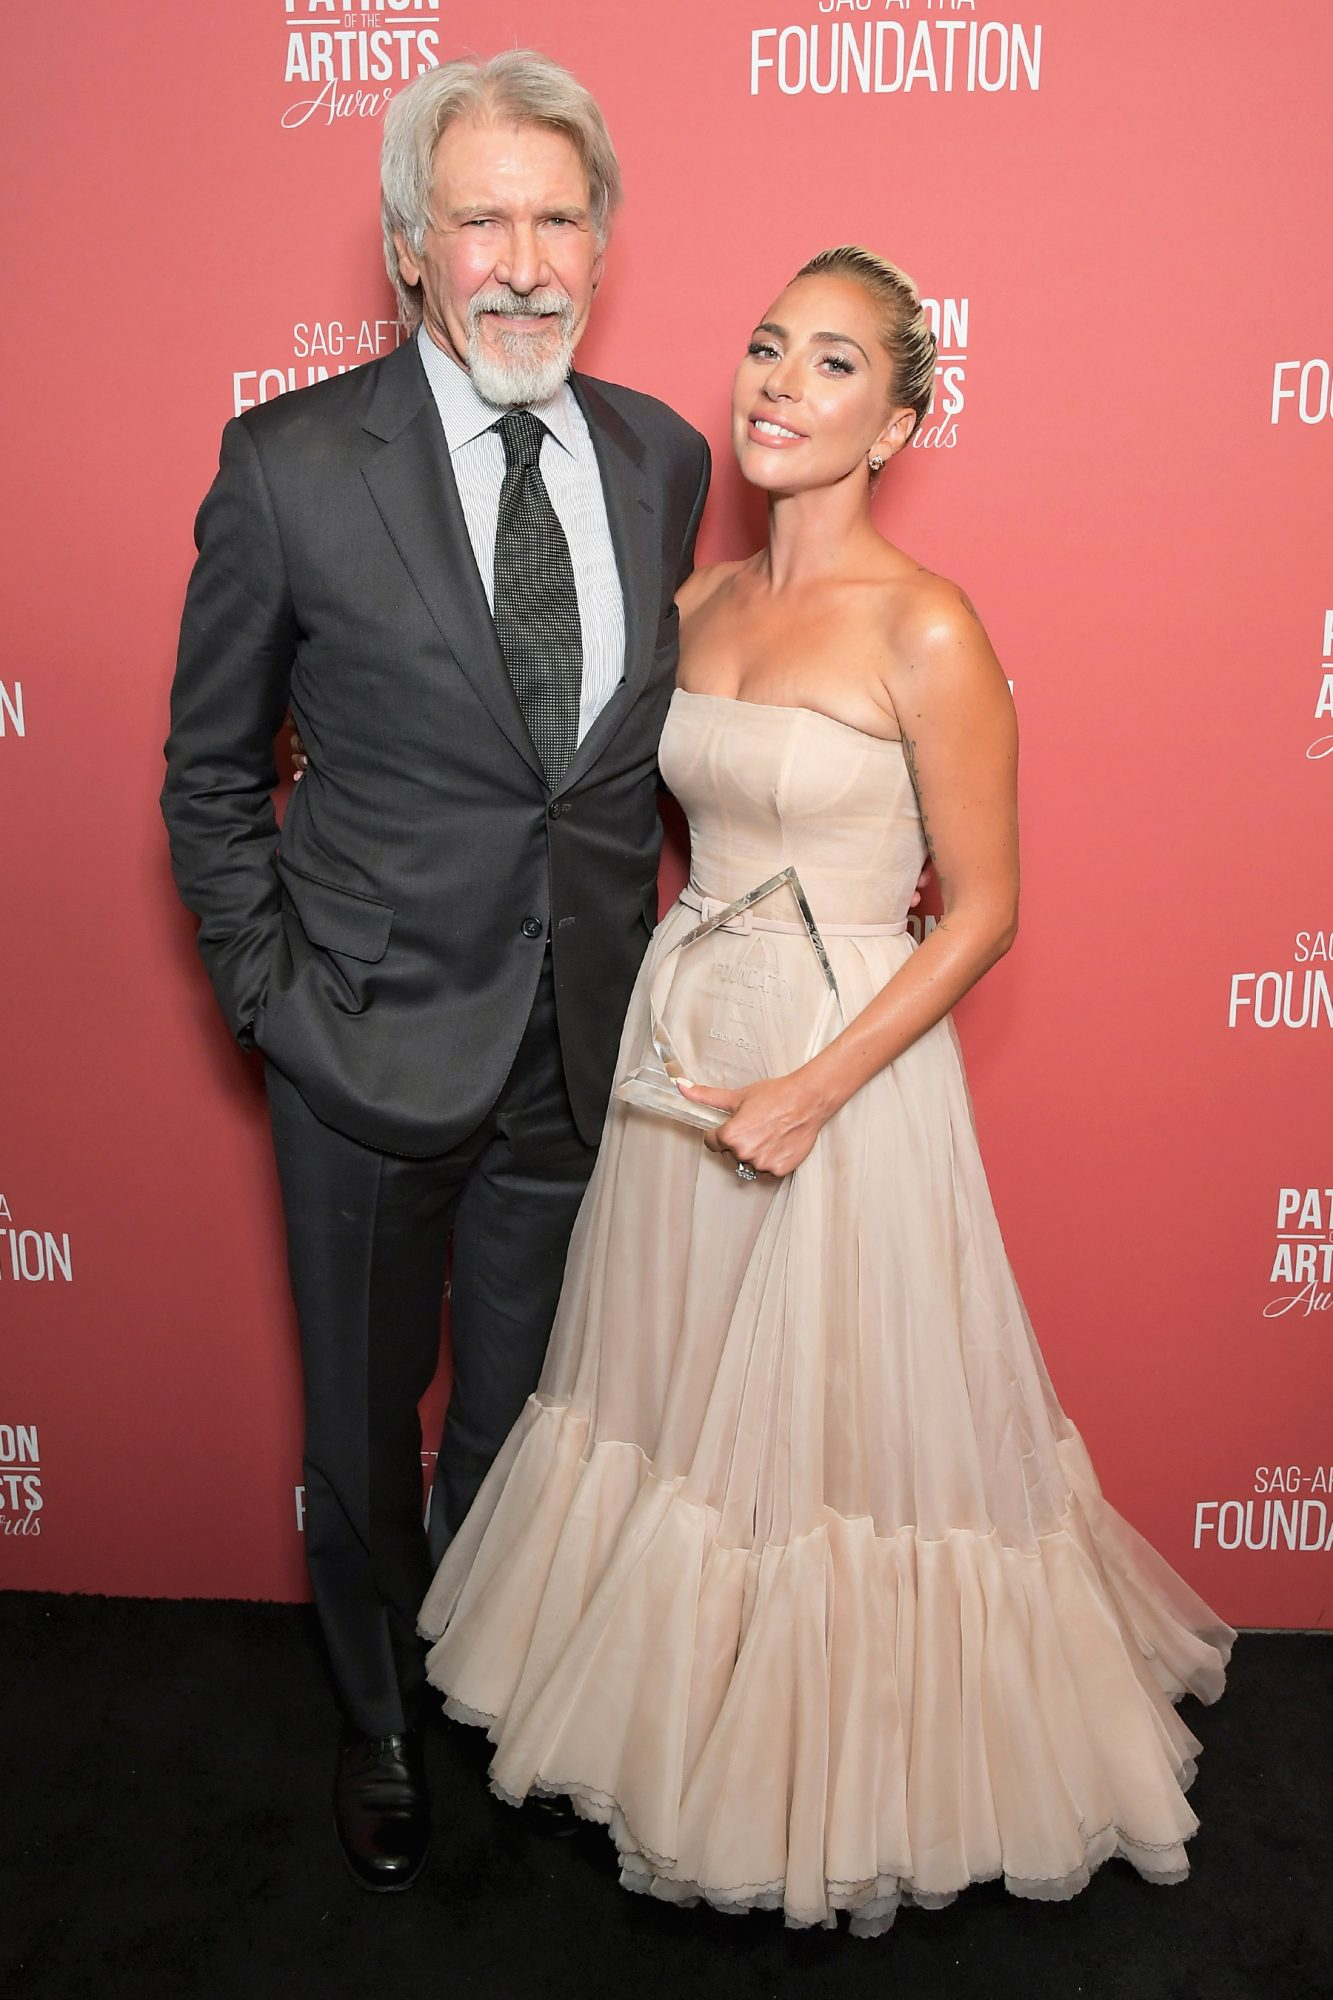 SAG-AFTRA Foundation's 3rd Annual Patron of the Artists Awards